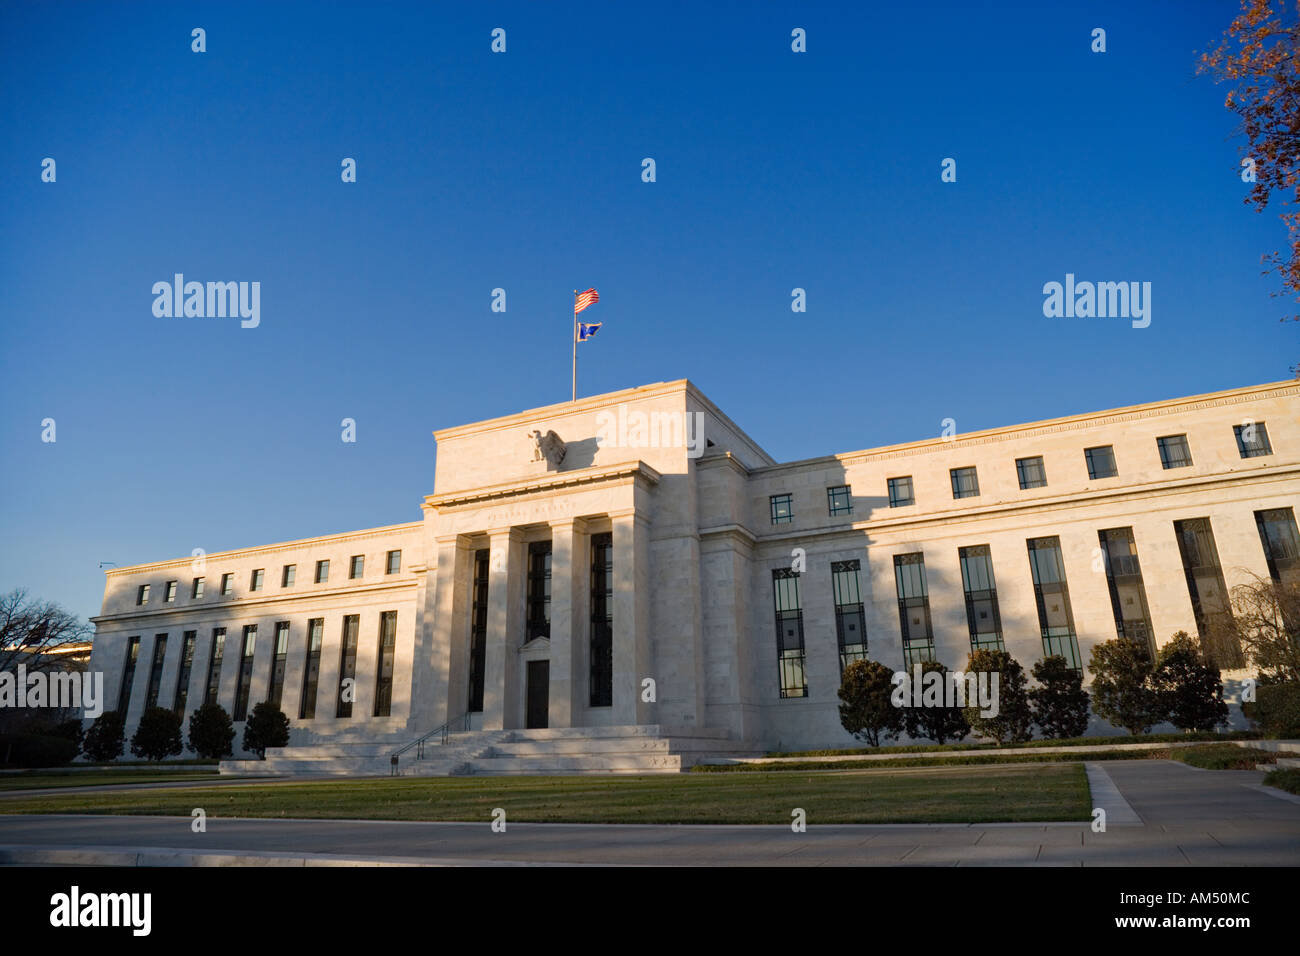 The Fed, Federal Reserve Bank, Washington DC. Main entrance on Constitution Avenue near the National Mall. - Stock Image